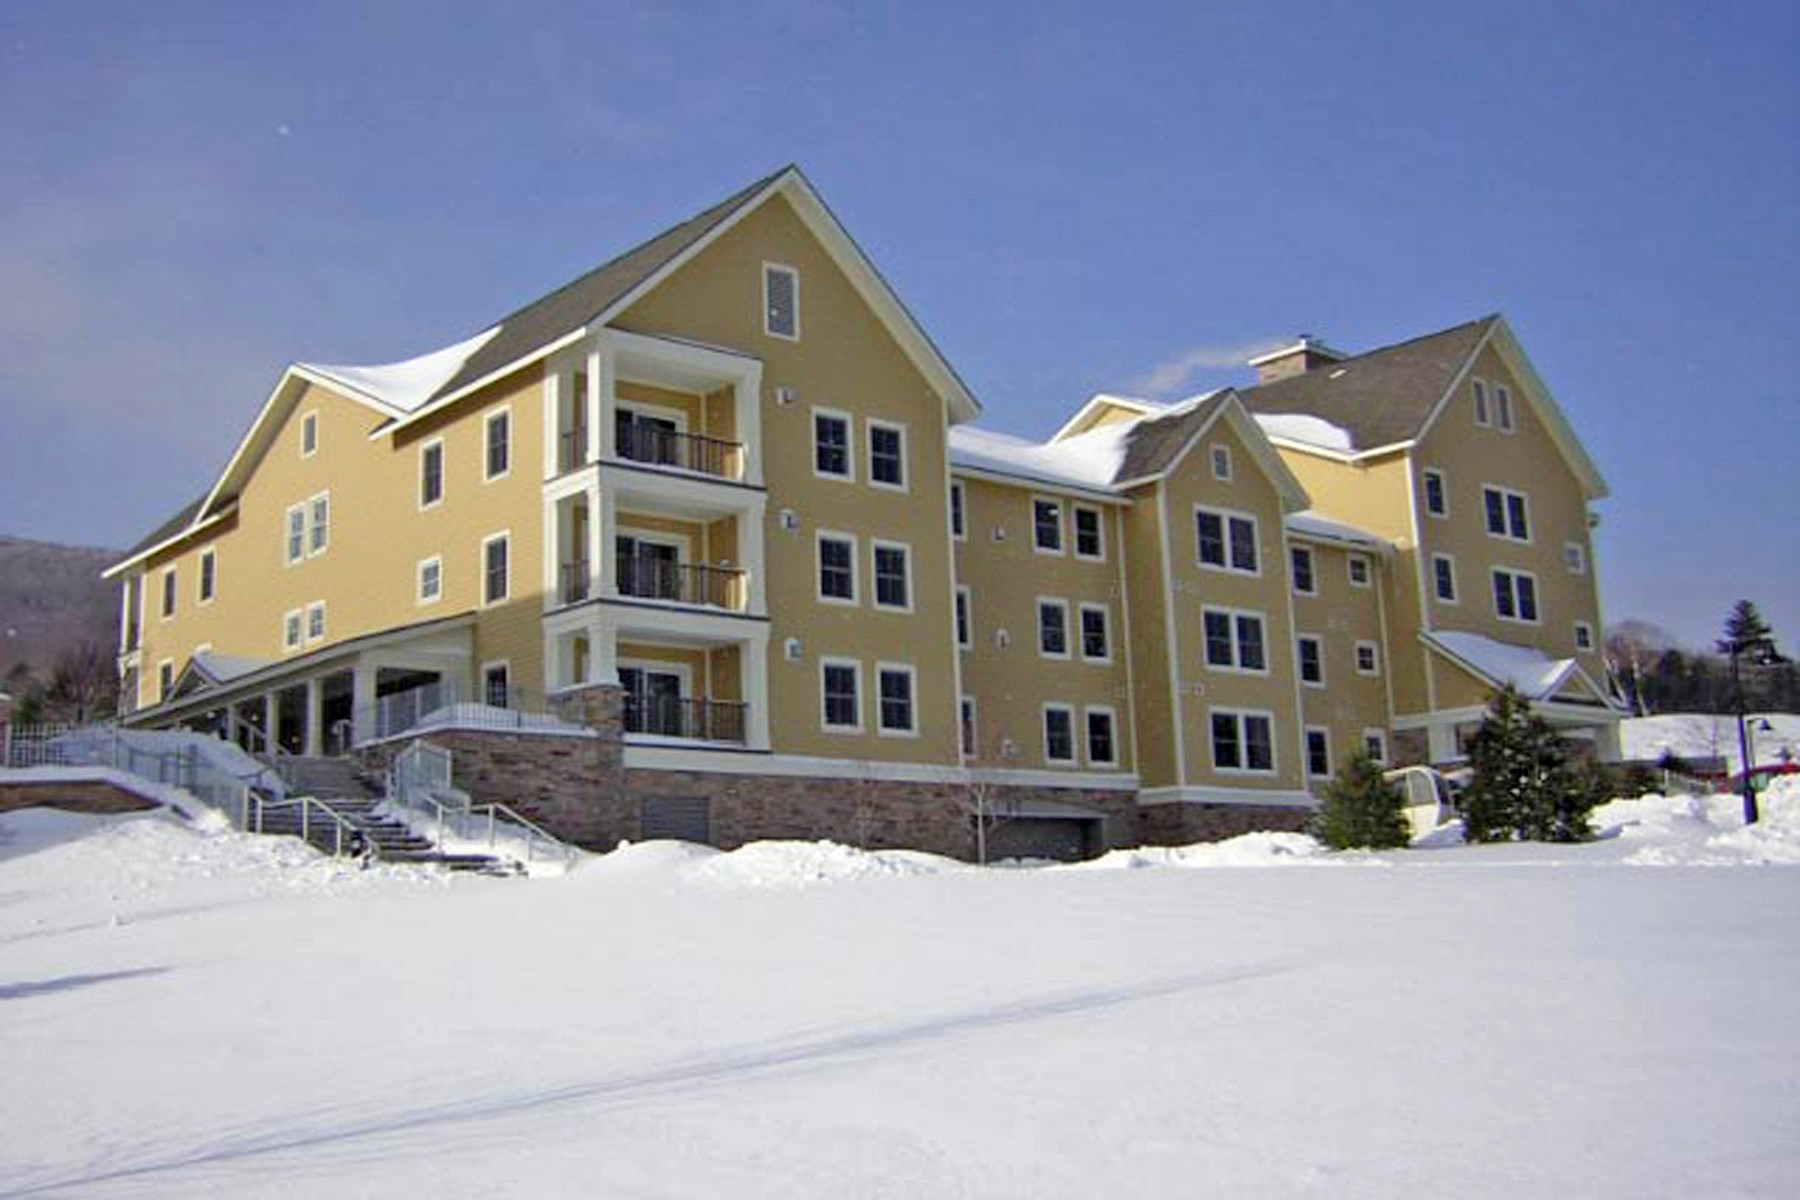 Condominium for Rent at Bixby House at Jacks Okemo Ridge Rd Ludlow, Vermont, 05149 United States